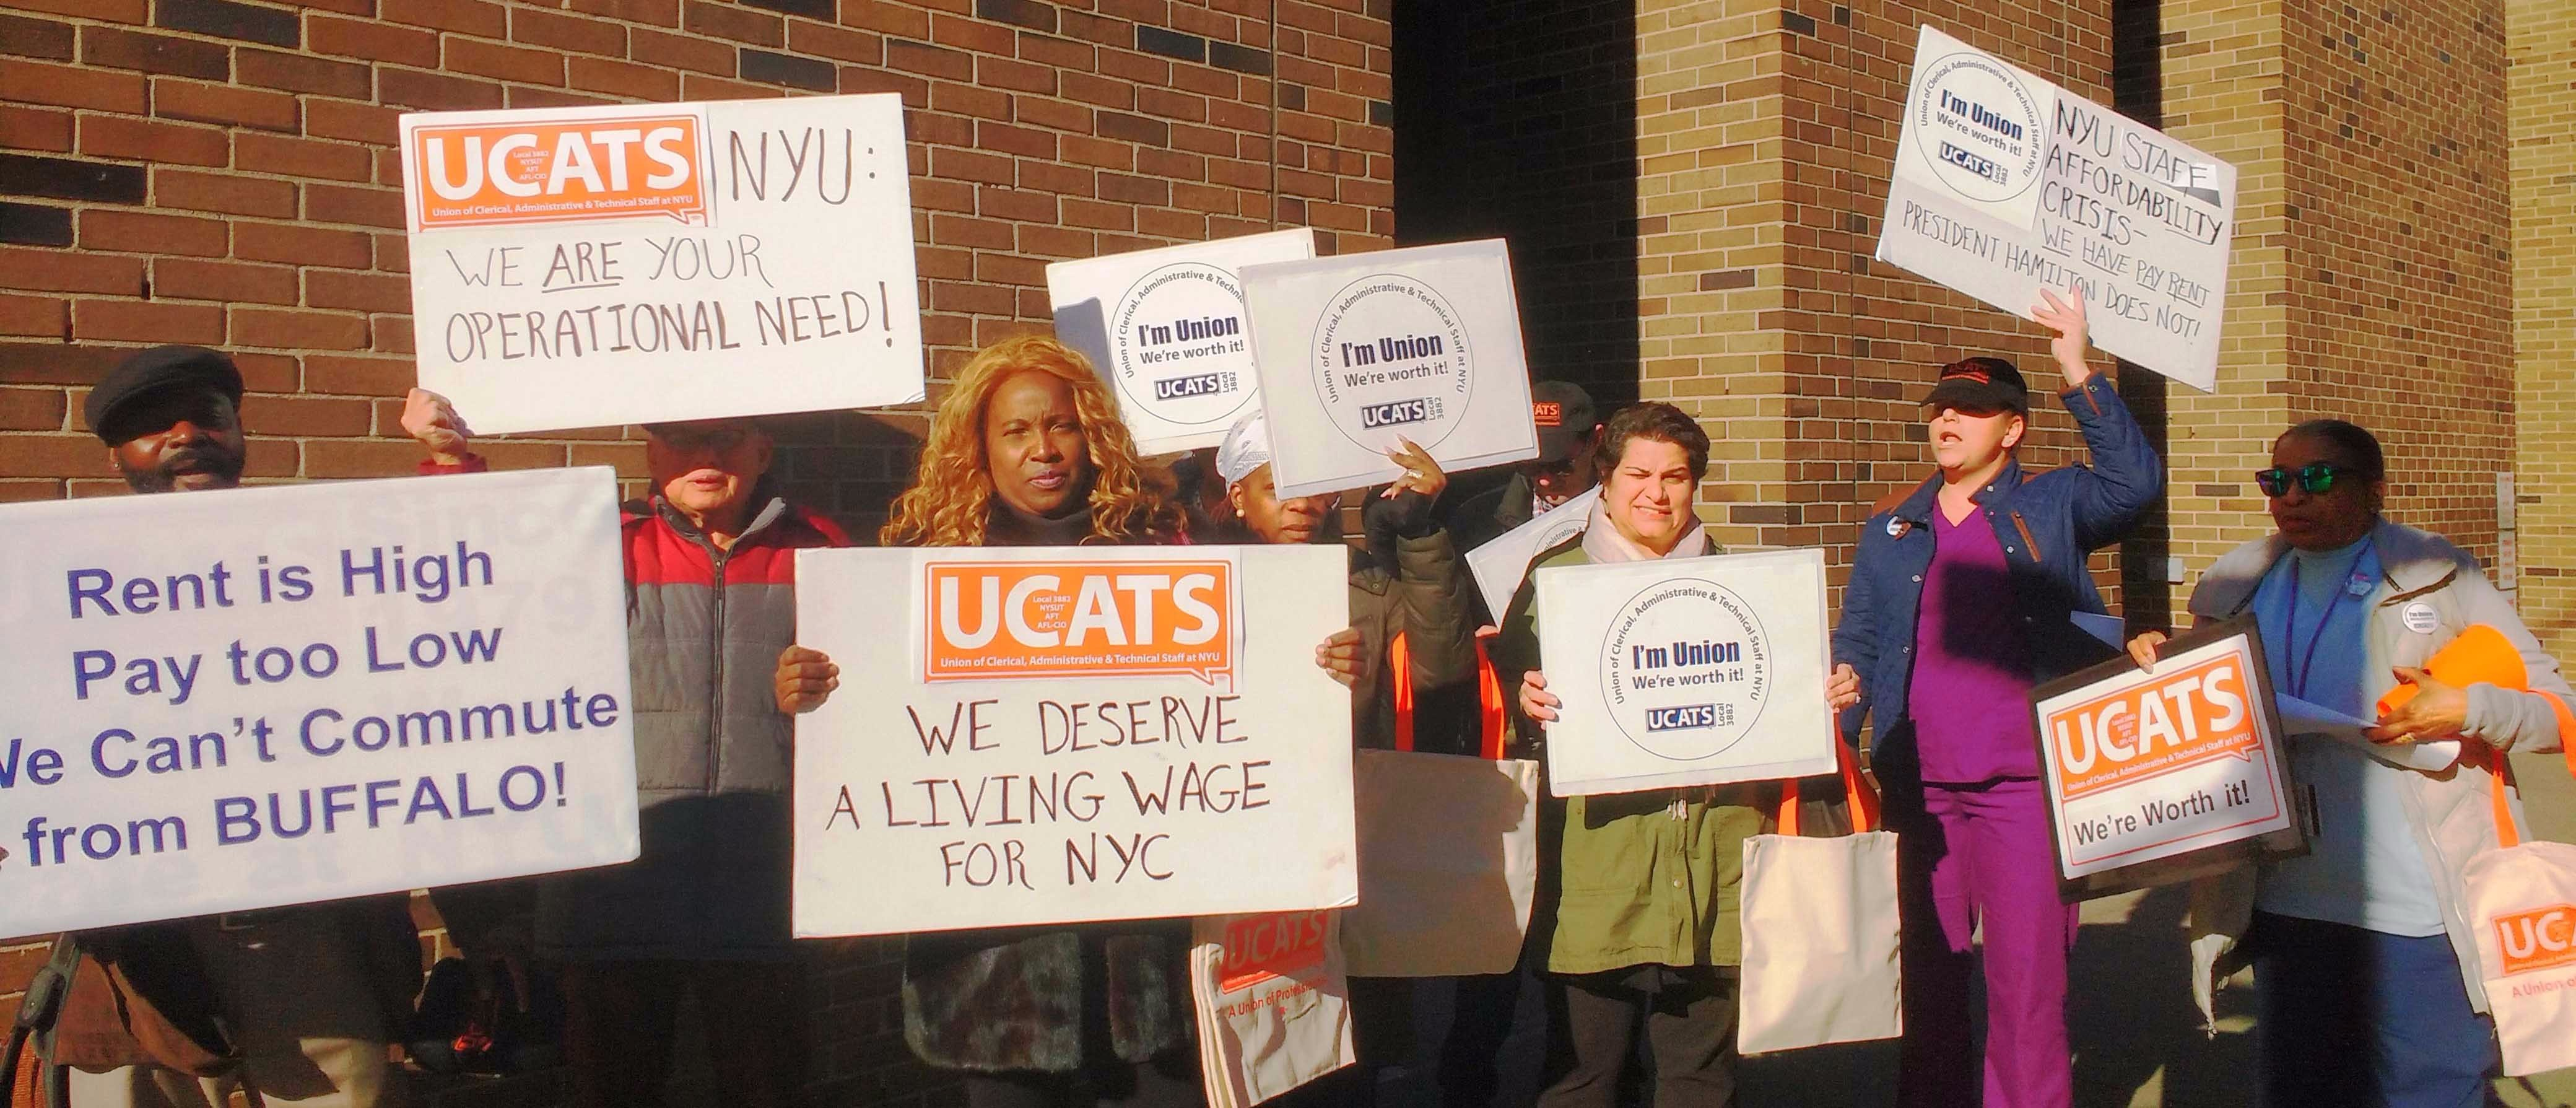 November 29: UCATS members from the Colleges of Dentistry and Nursing rallied for a fair contrat on 24th Street and 1st Ave.